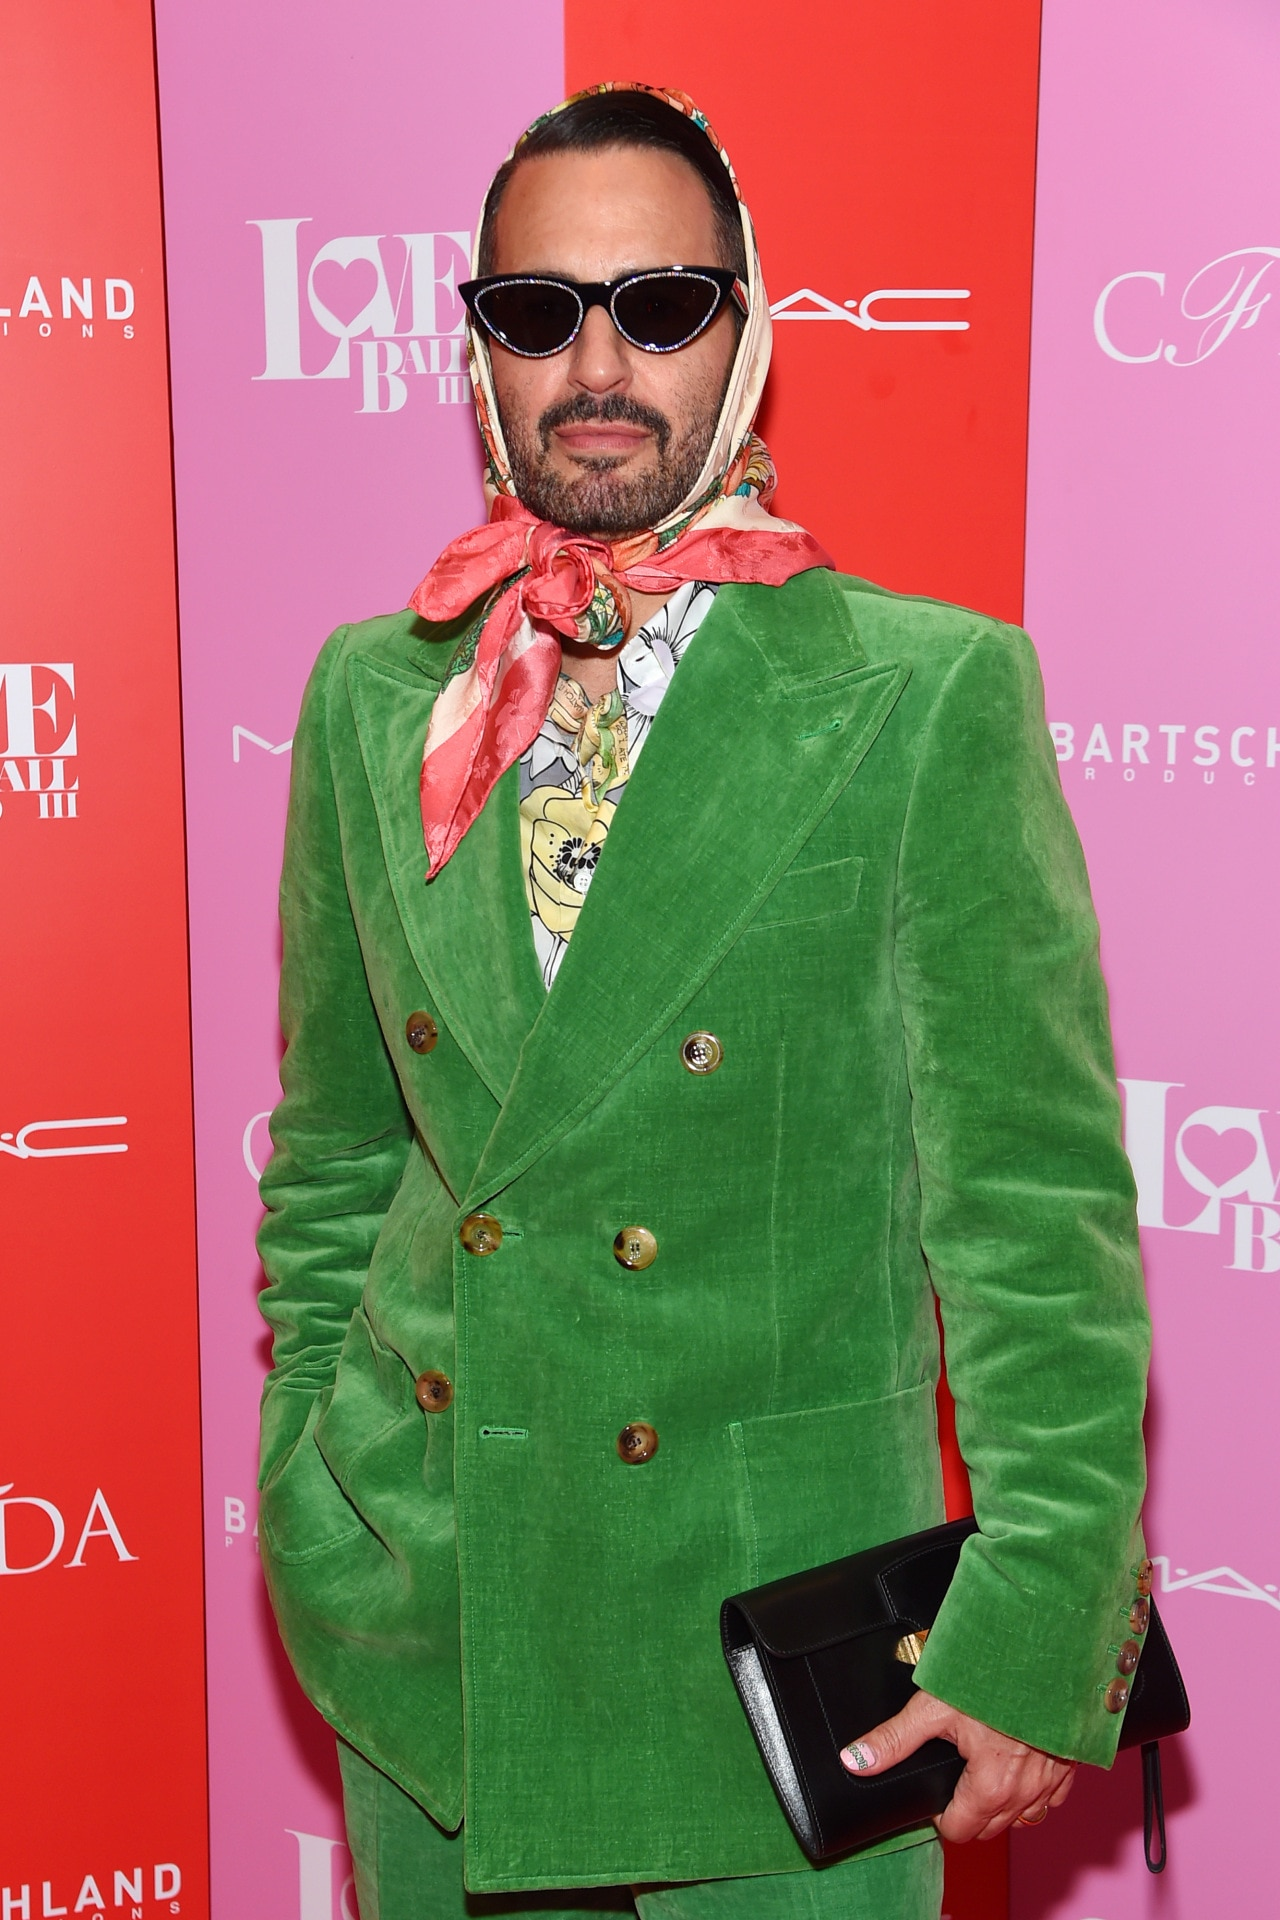 Marc Jacobs is being honoured with MTV's first-ever Fashion Trailblazer Award